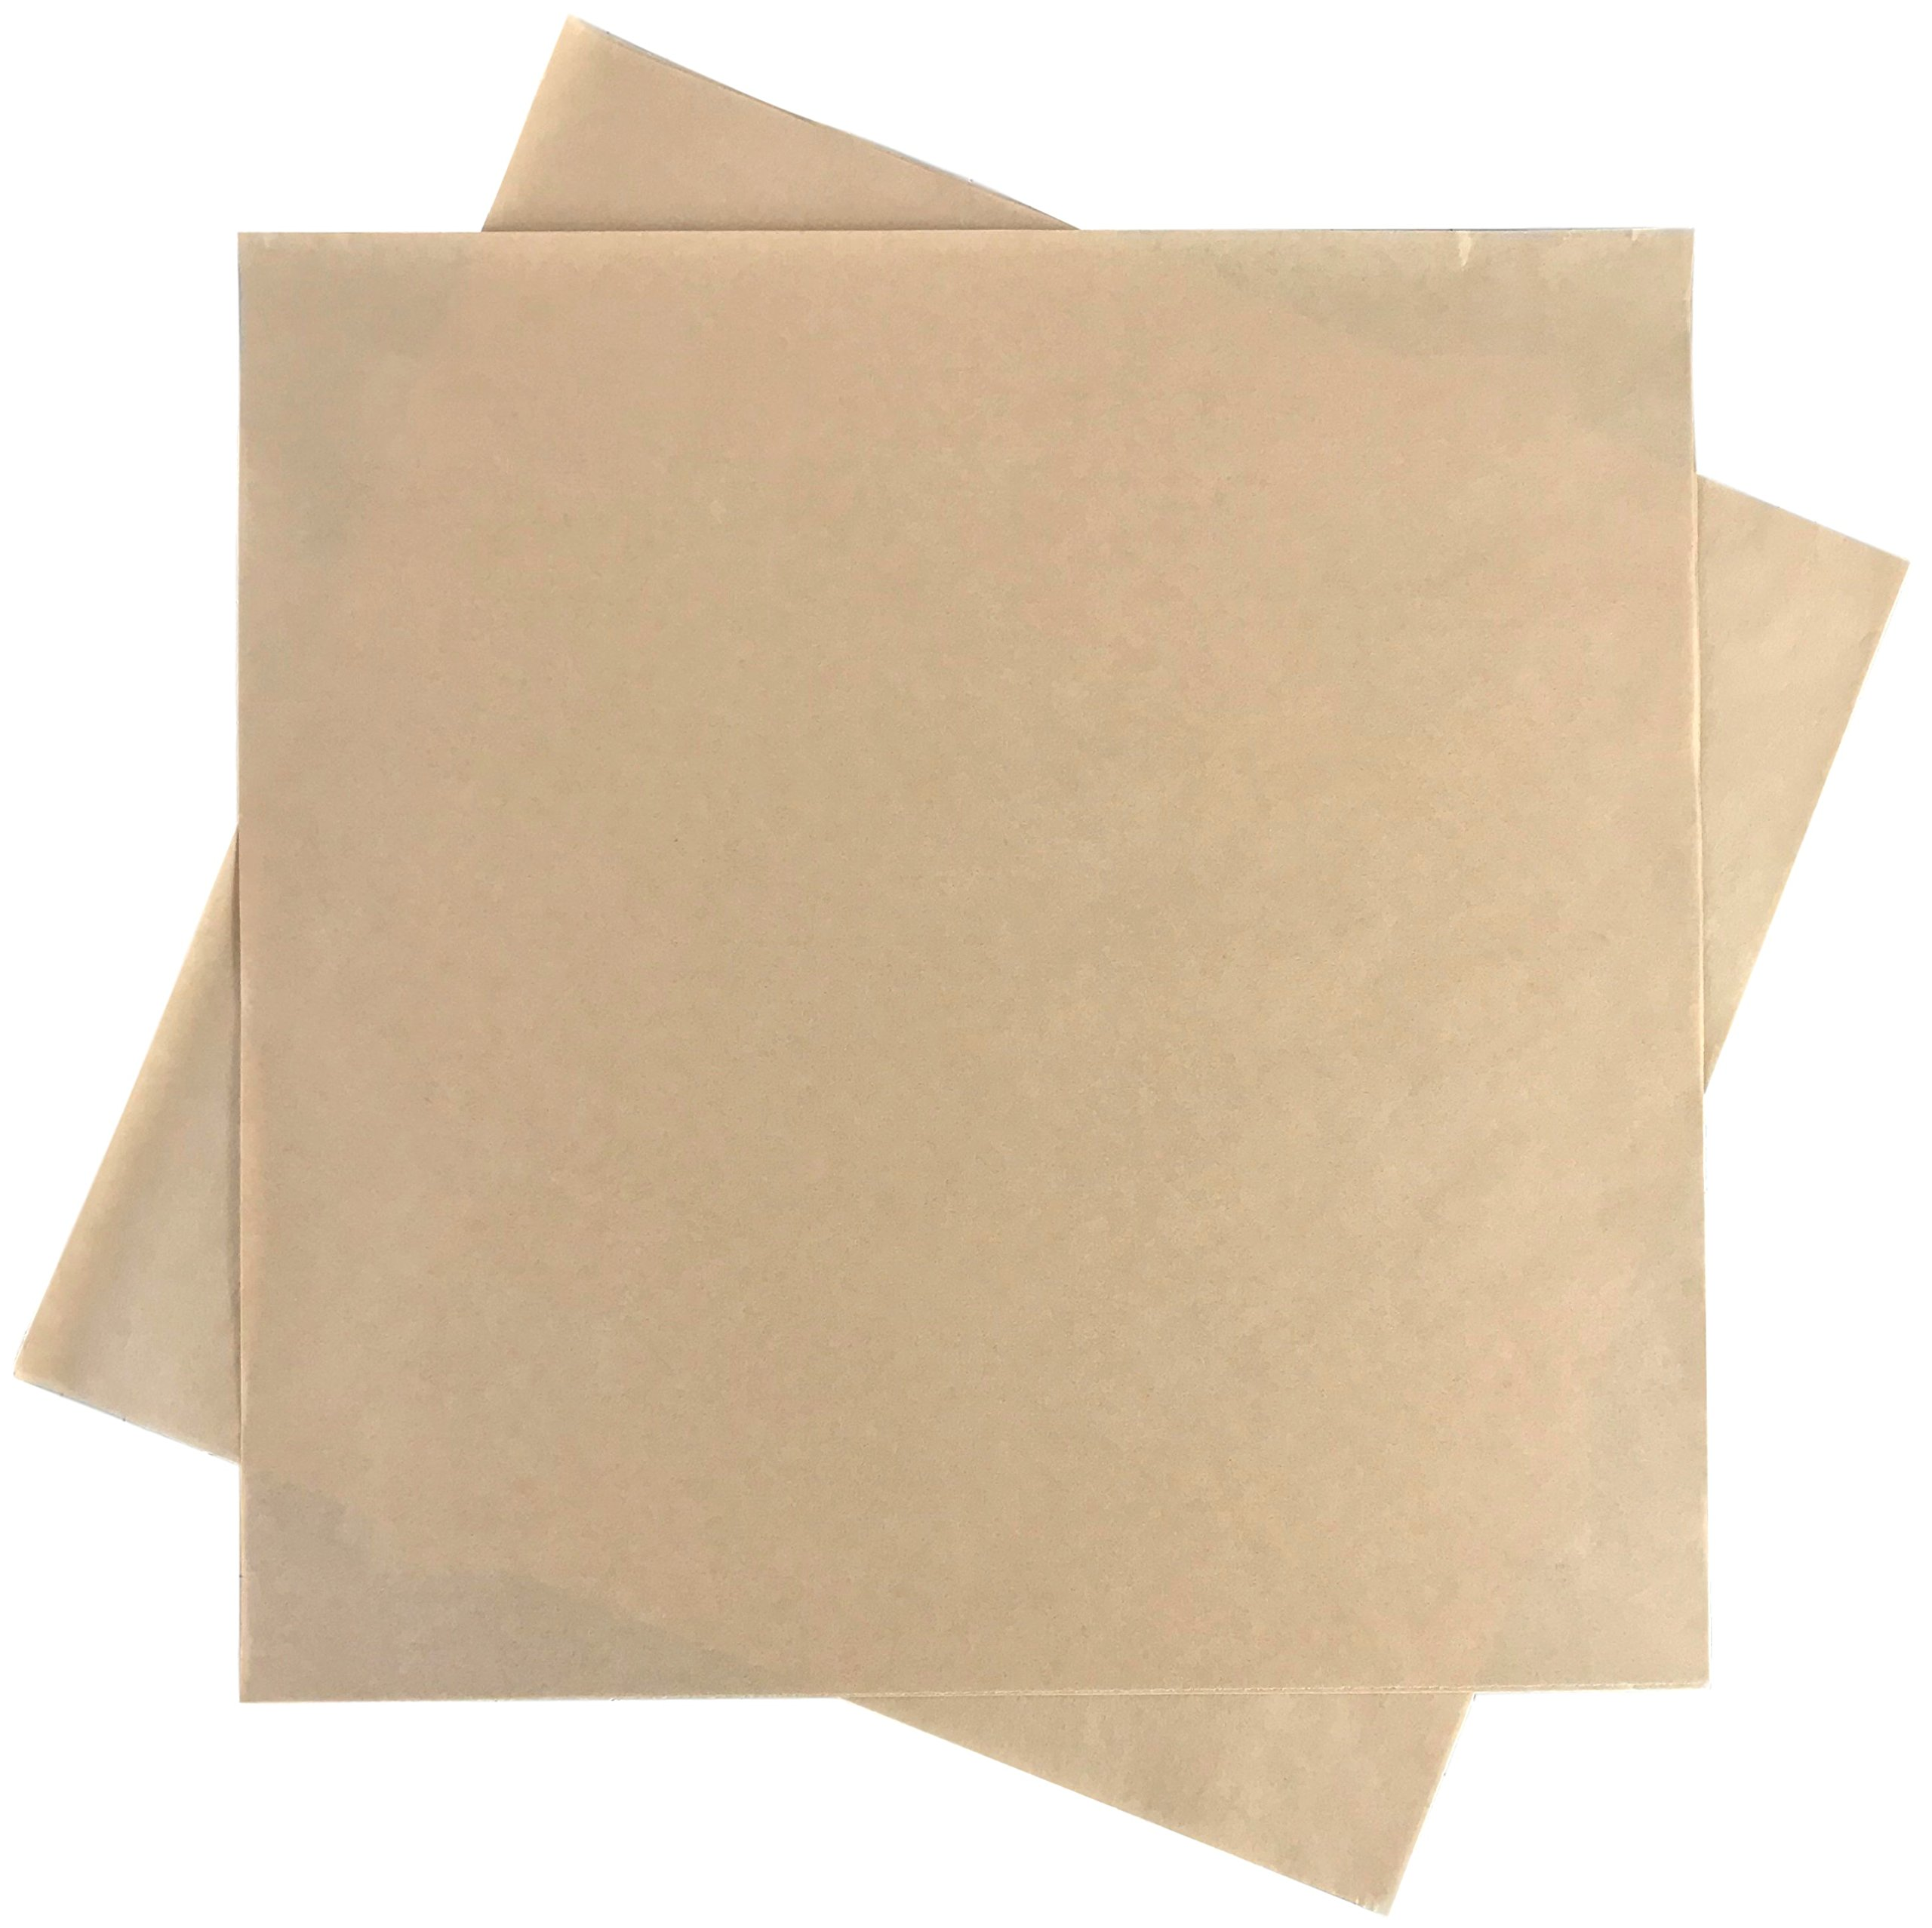 Rupert and Jeoffrey's Trading Co. Deli Squares - Paper Sheets (12'' x 12'') (Natural Brown - 250 Sheets)